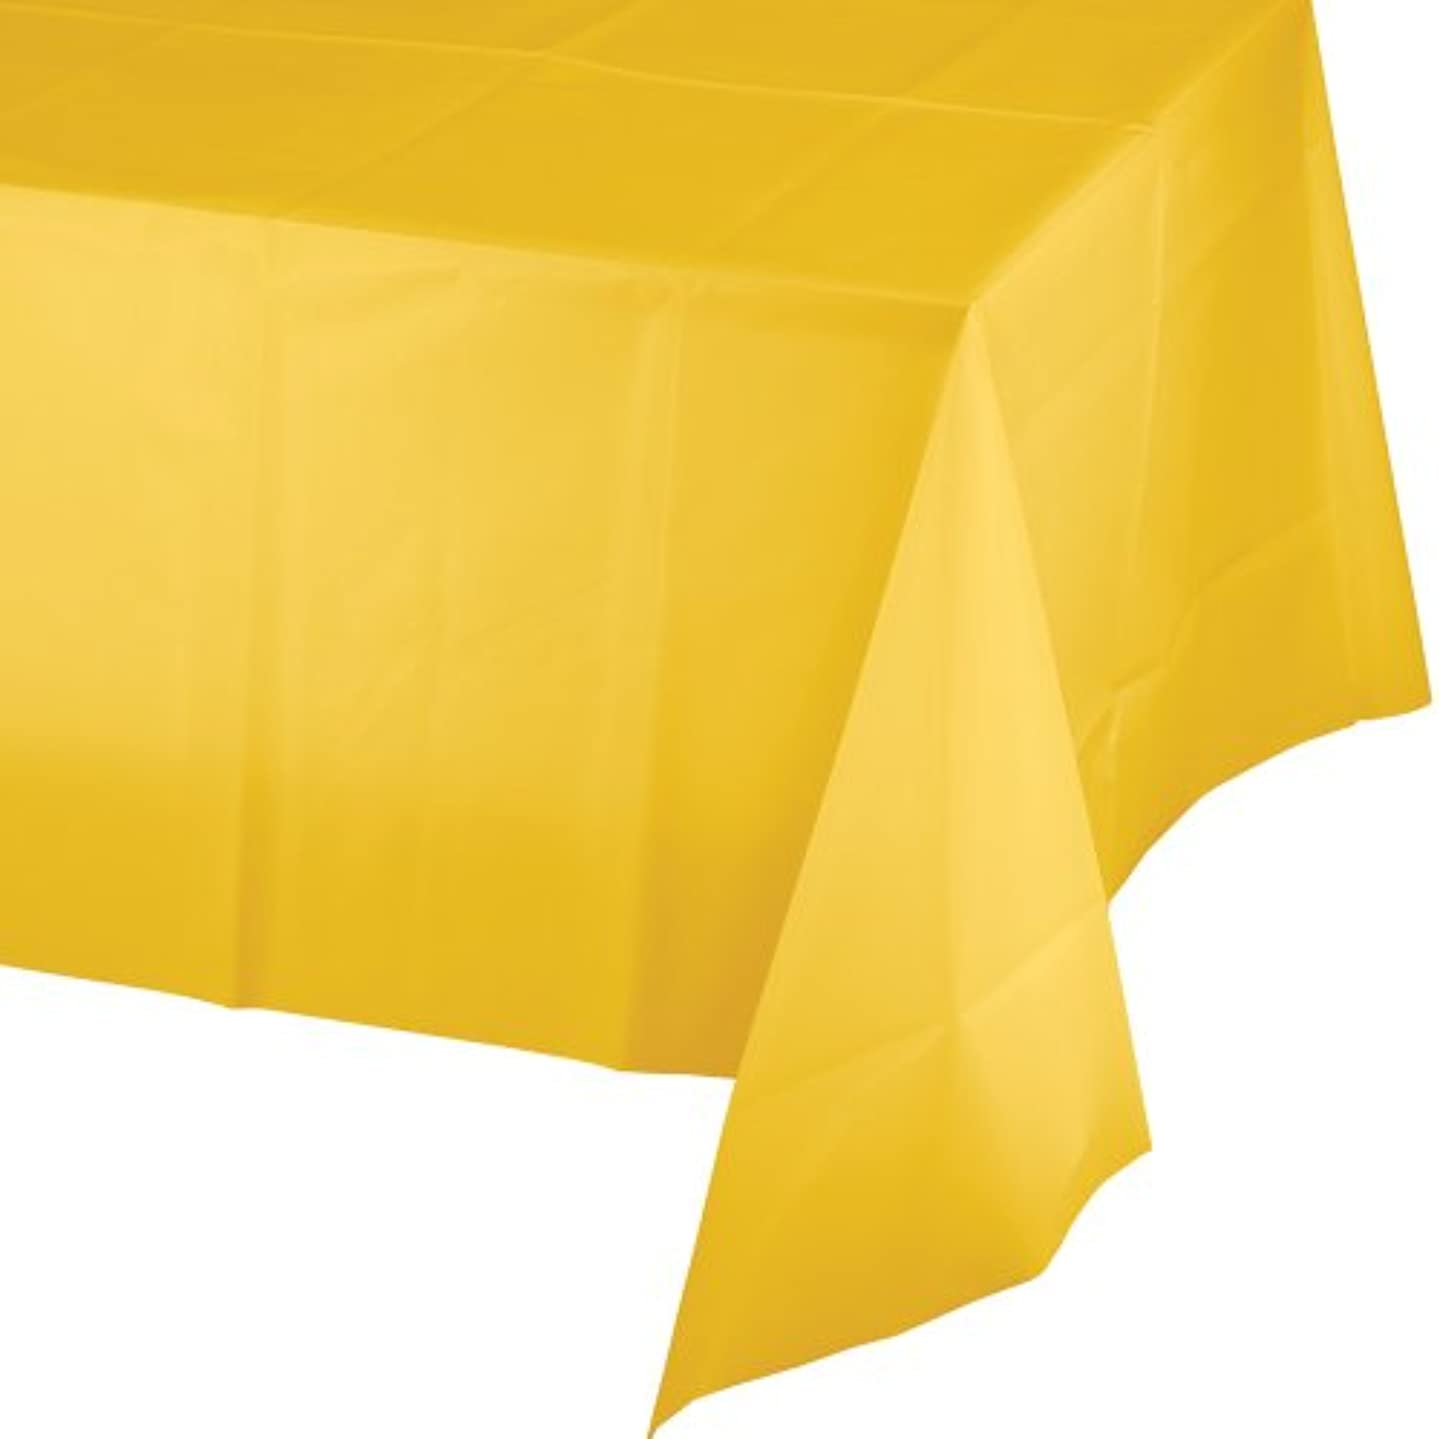 Creative Converting Touch of Color Plastic Table Cover, 54 by 108-Inch, School Bus Yellow bownggiwxd499239